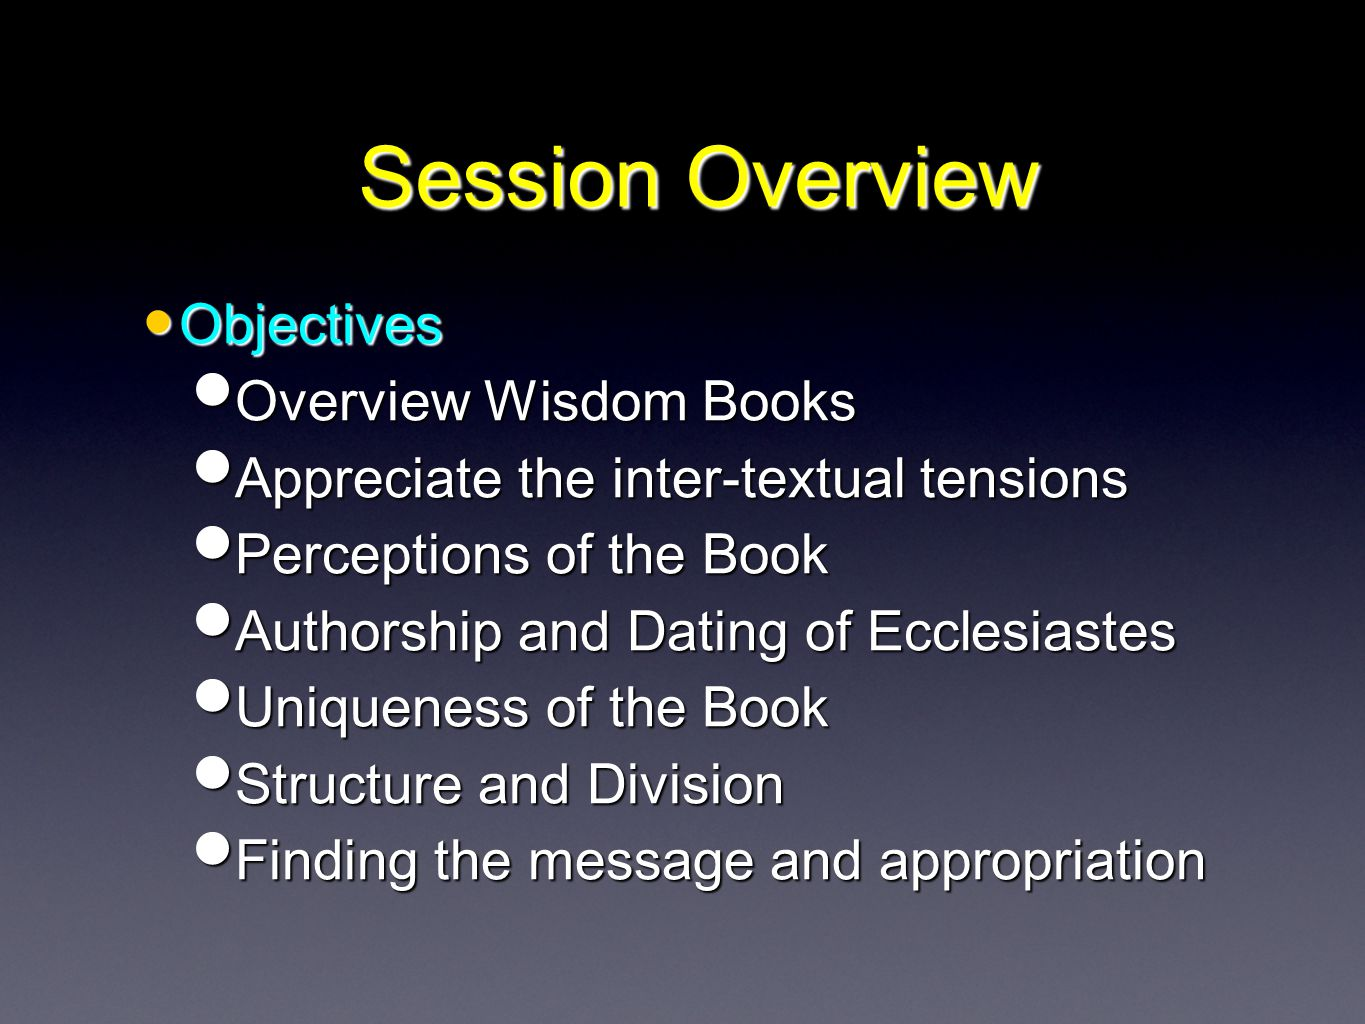 Session Overview Objectives Objectives Overview Wisdom Books Overview Wisdom Books Appreciate the inter-textual tensions Appreciate the inter-textual tensions Perceptions of the Book Perceptions of the Book Authorship and Dating of Ecclesiastes Authorship and Dating of Ecclesiastes Uniqueness of the Book Uniqueness of the Book Structure and Division Structure and Division Finding the message and appropriation Finding the message and appropriation